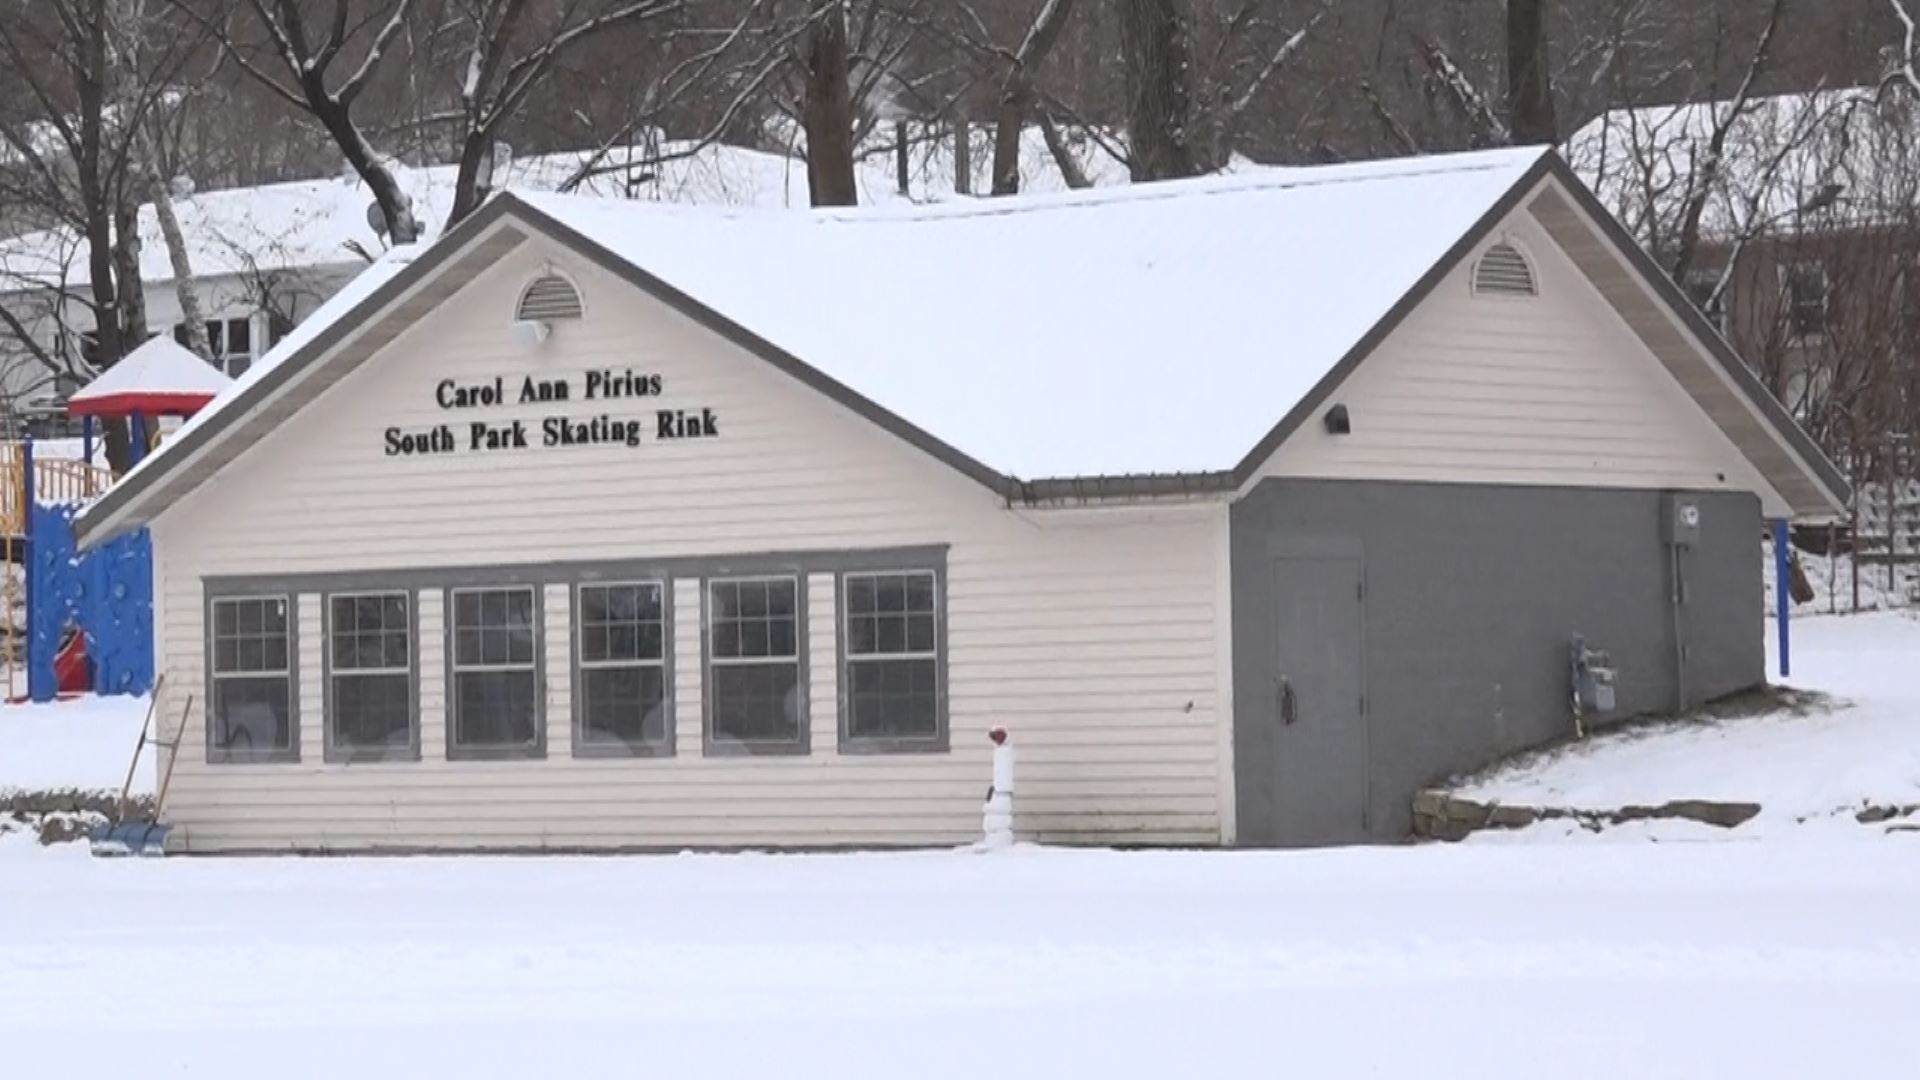 Image of the Carol Ann Pirius South Park warming house in winter